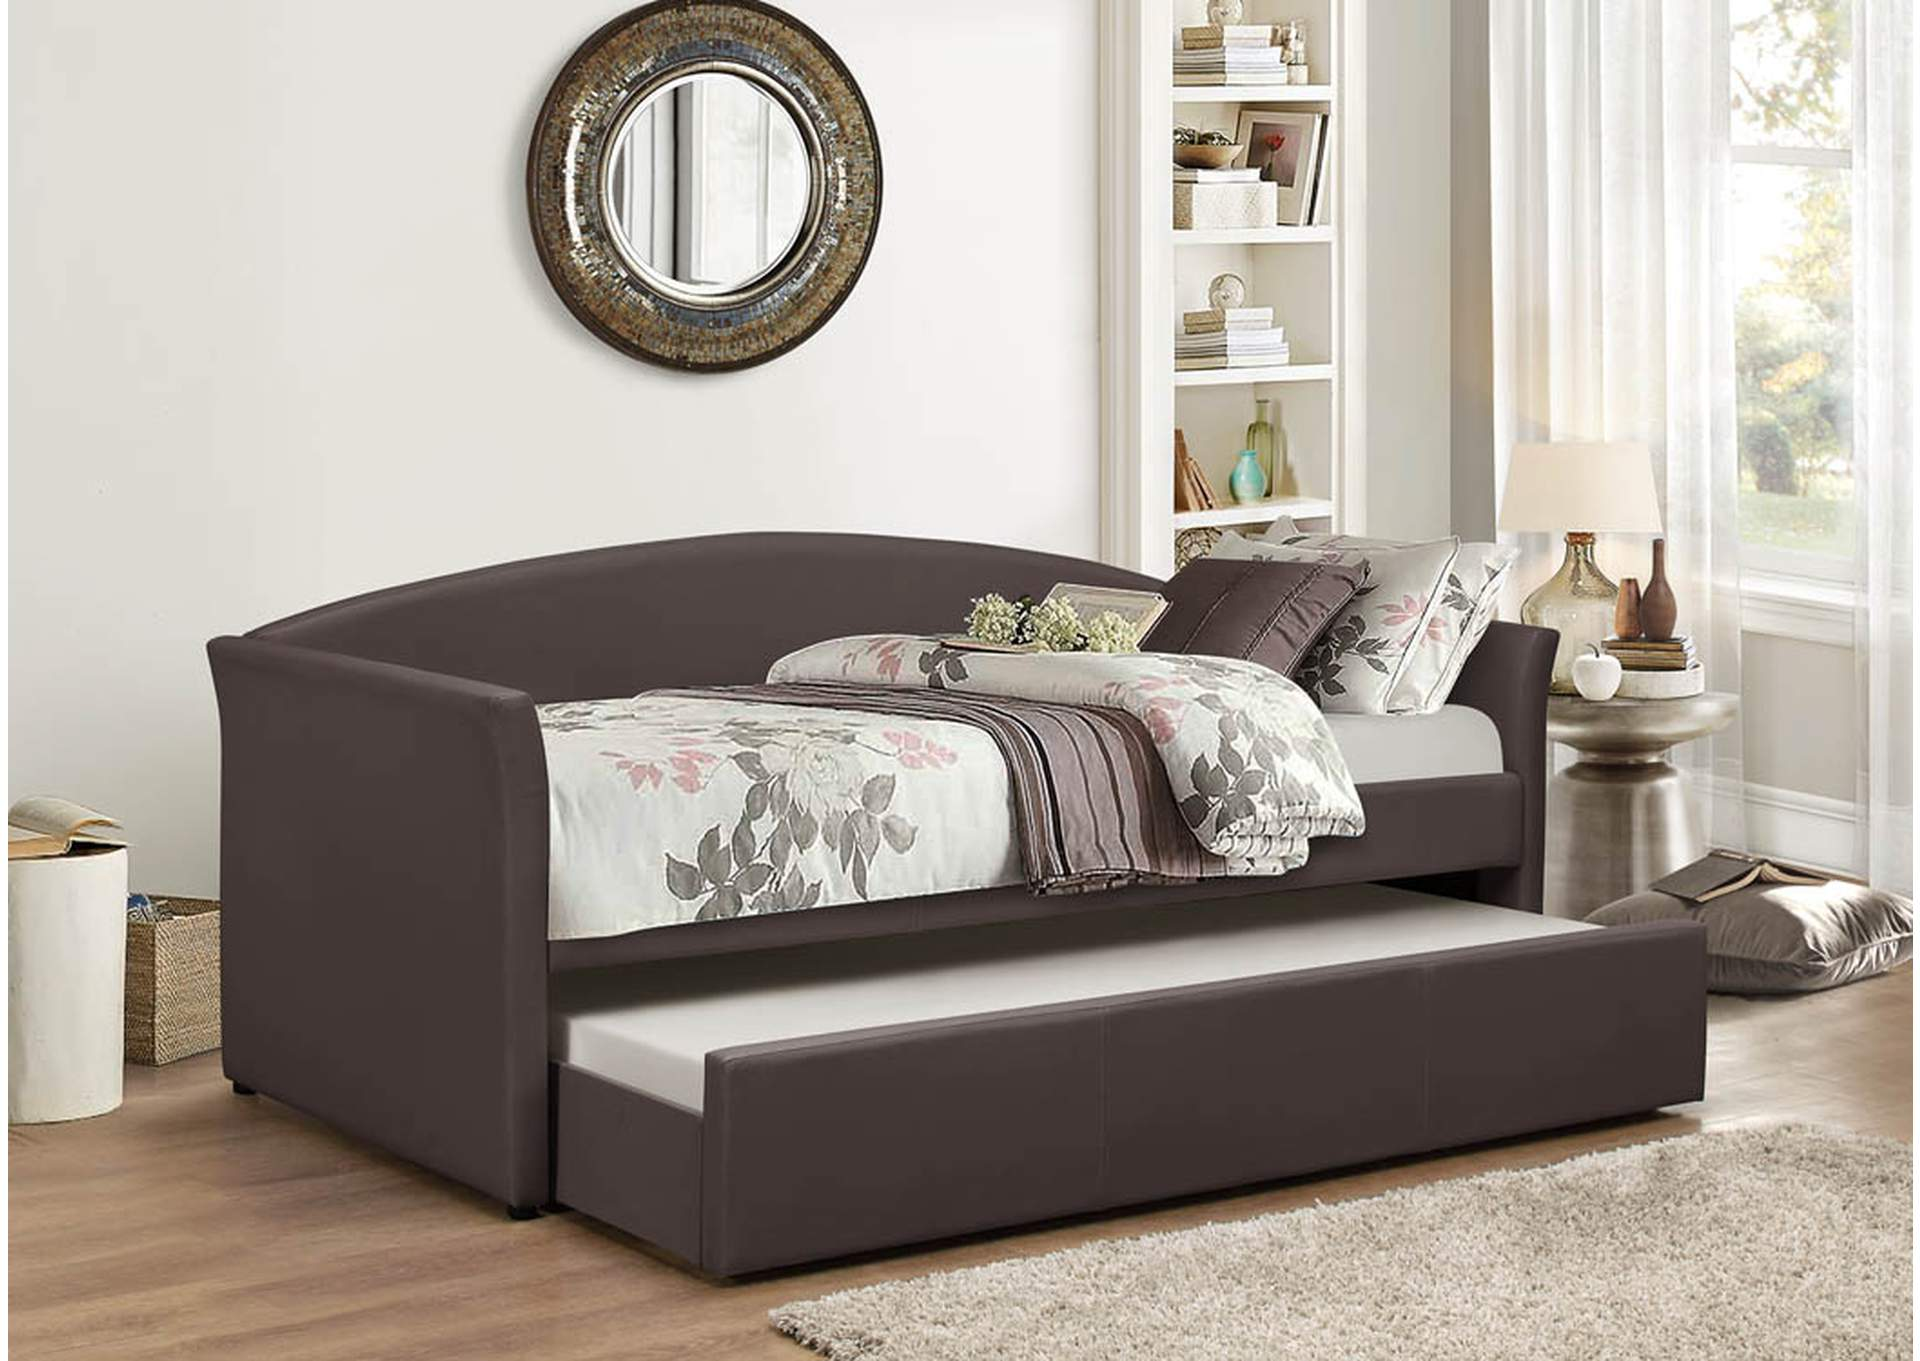 Brown Pu Day Bed w/Trundle and Slats,Global Trading